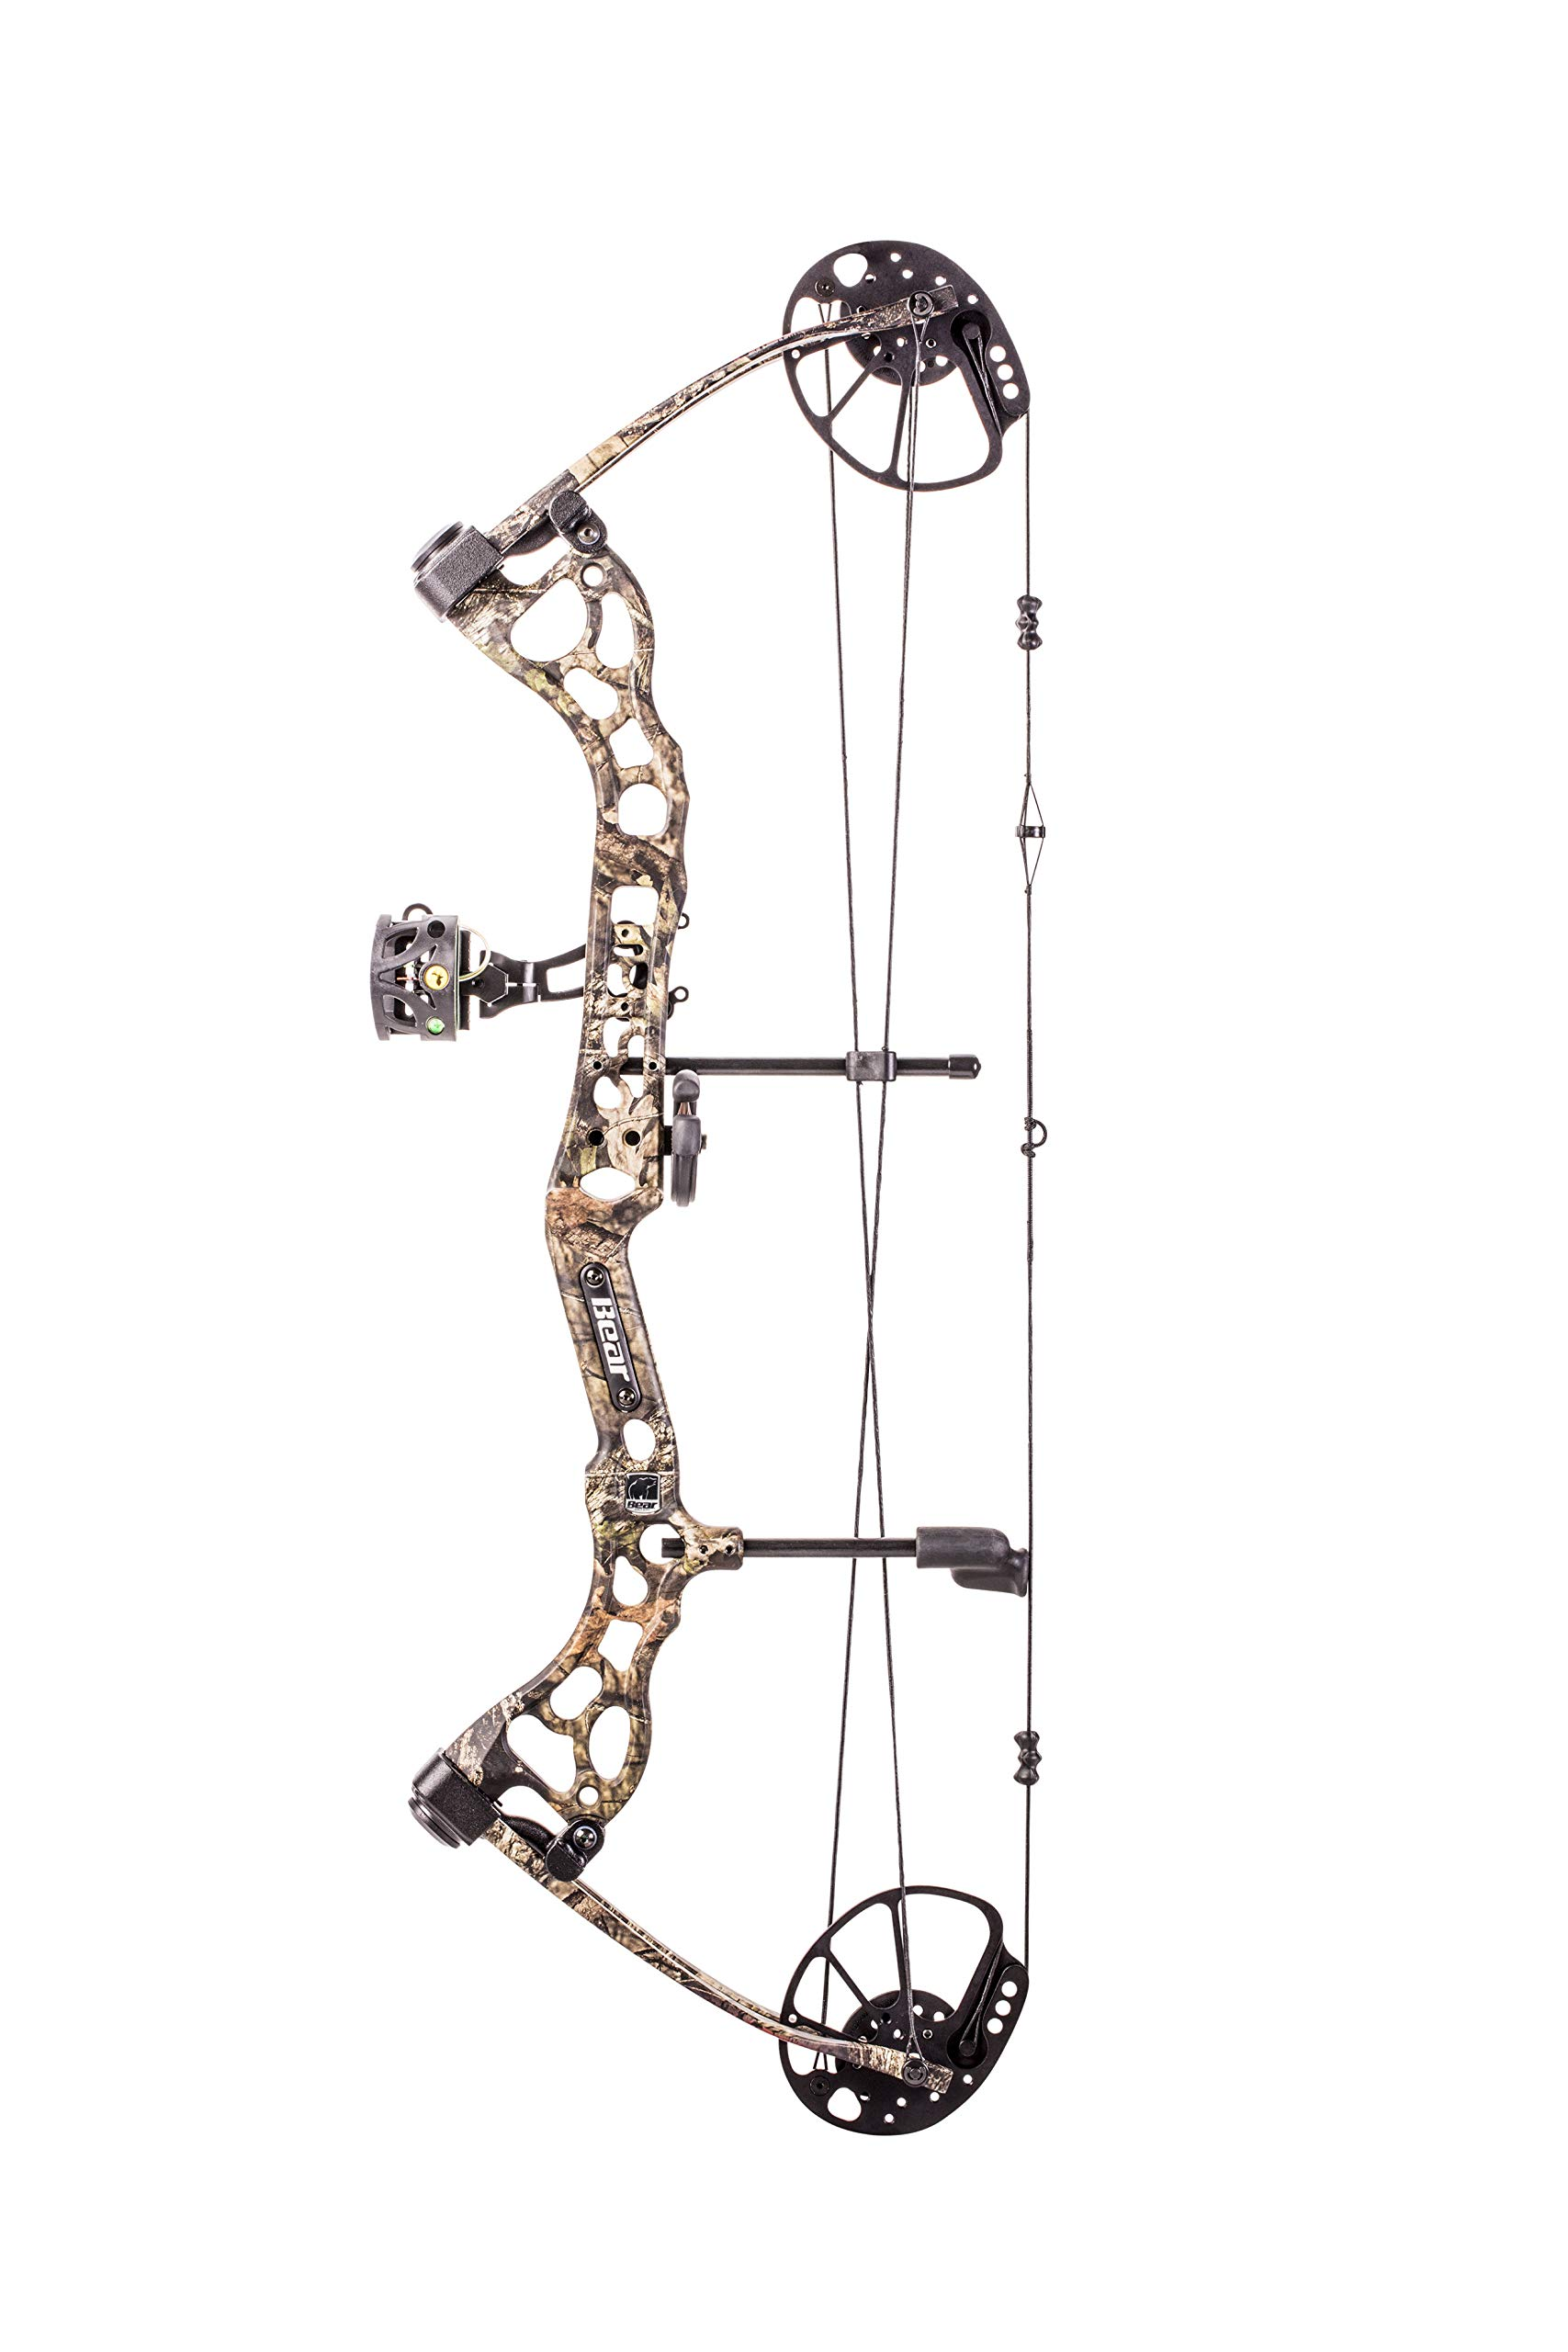 Bear Archery Pledge Compound Bow Includes Trophy Ridge Mist 3-Pin Sight, Whisker Biscuit, Peep Sight, and D-Loop